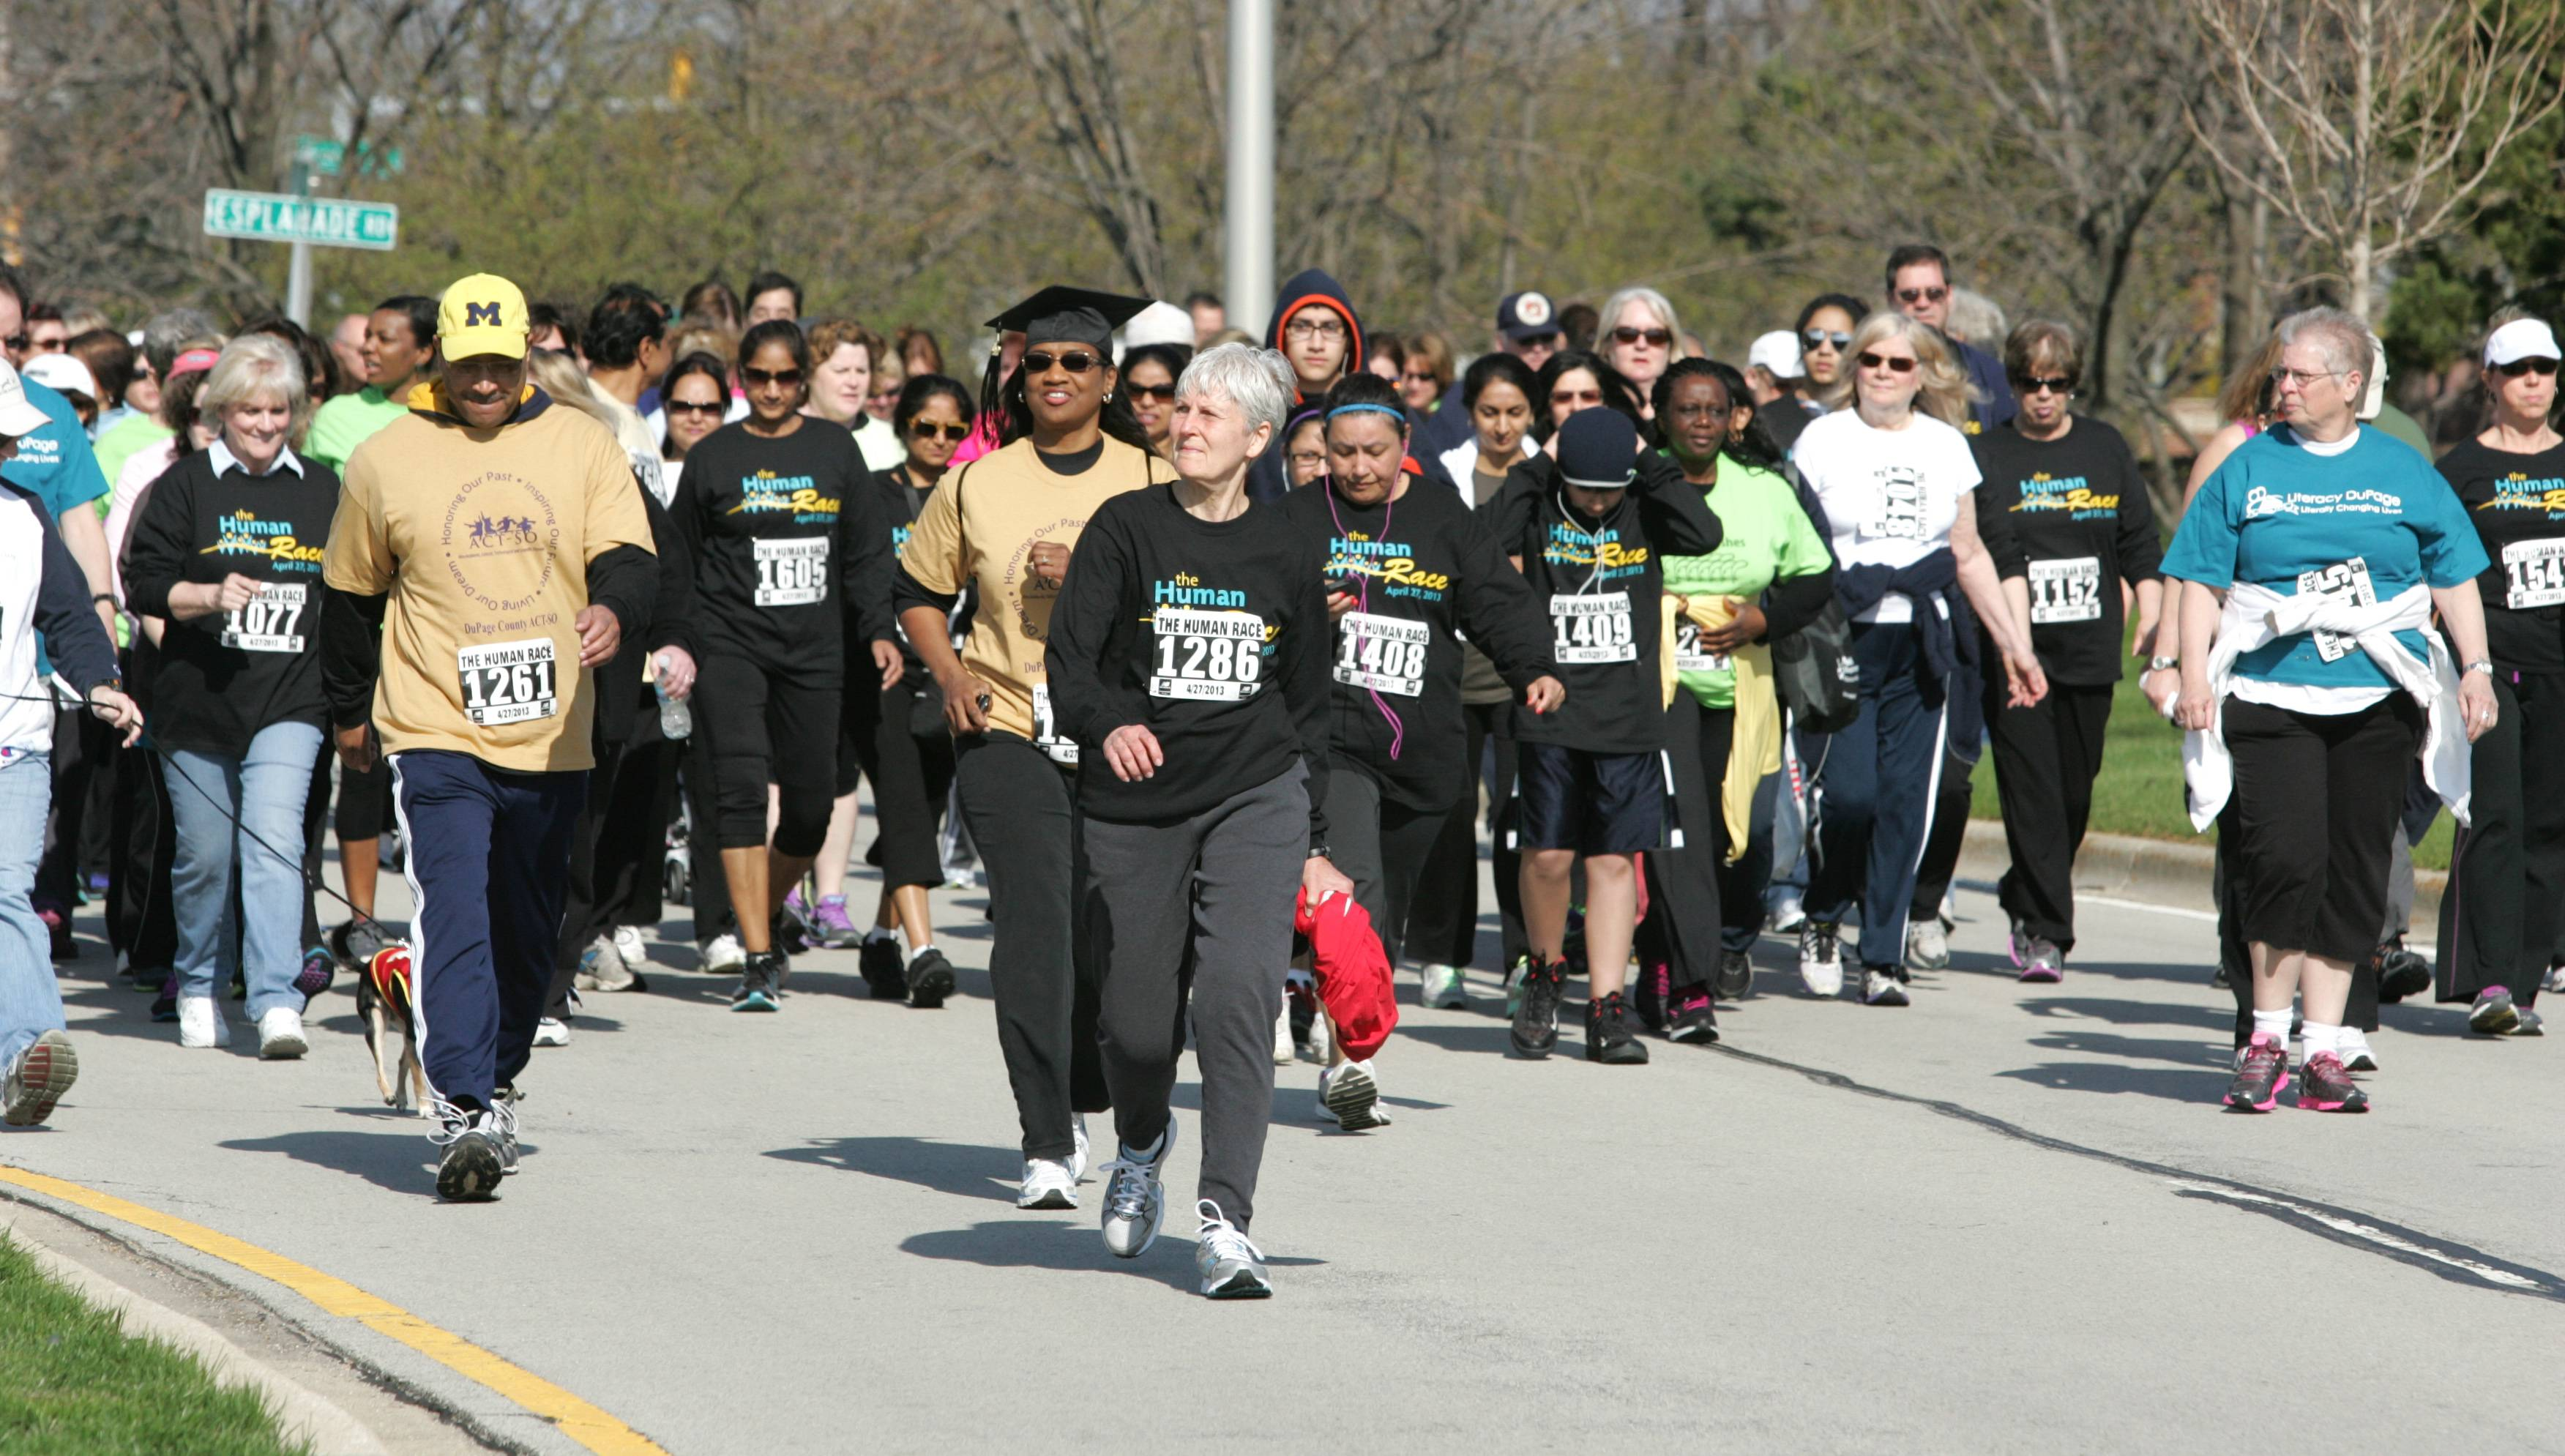 The Human Race, organized by Giving DuPage, brings together supporters of nearly 60 DuPage nonprofits for a single 5K run and fitness walk with participants choosing which group benefits from their registration fees.